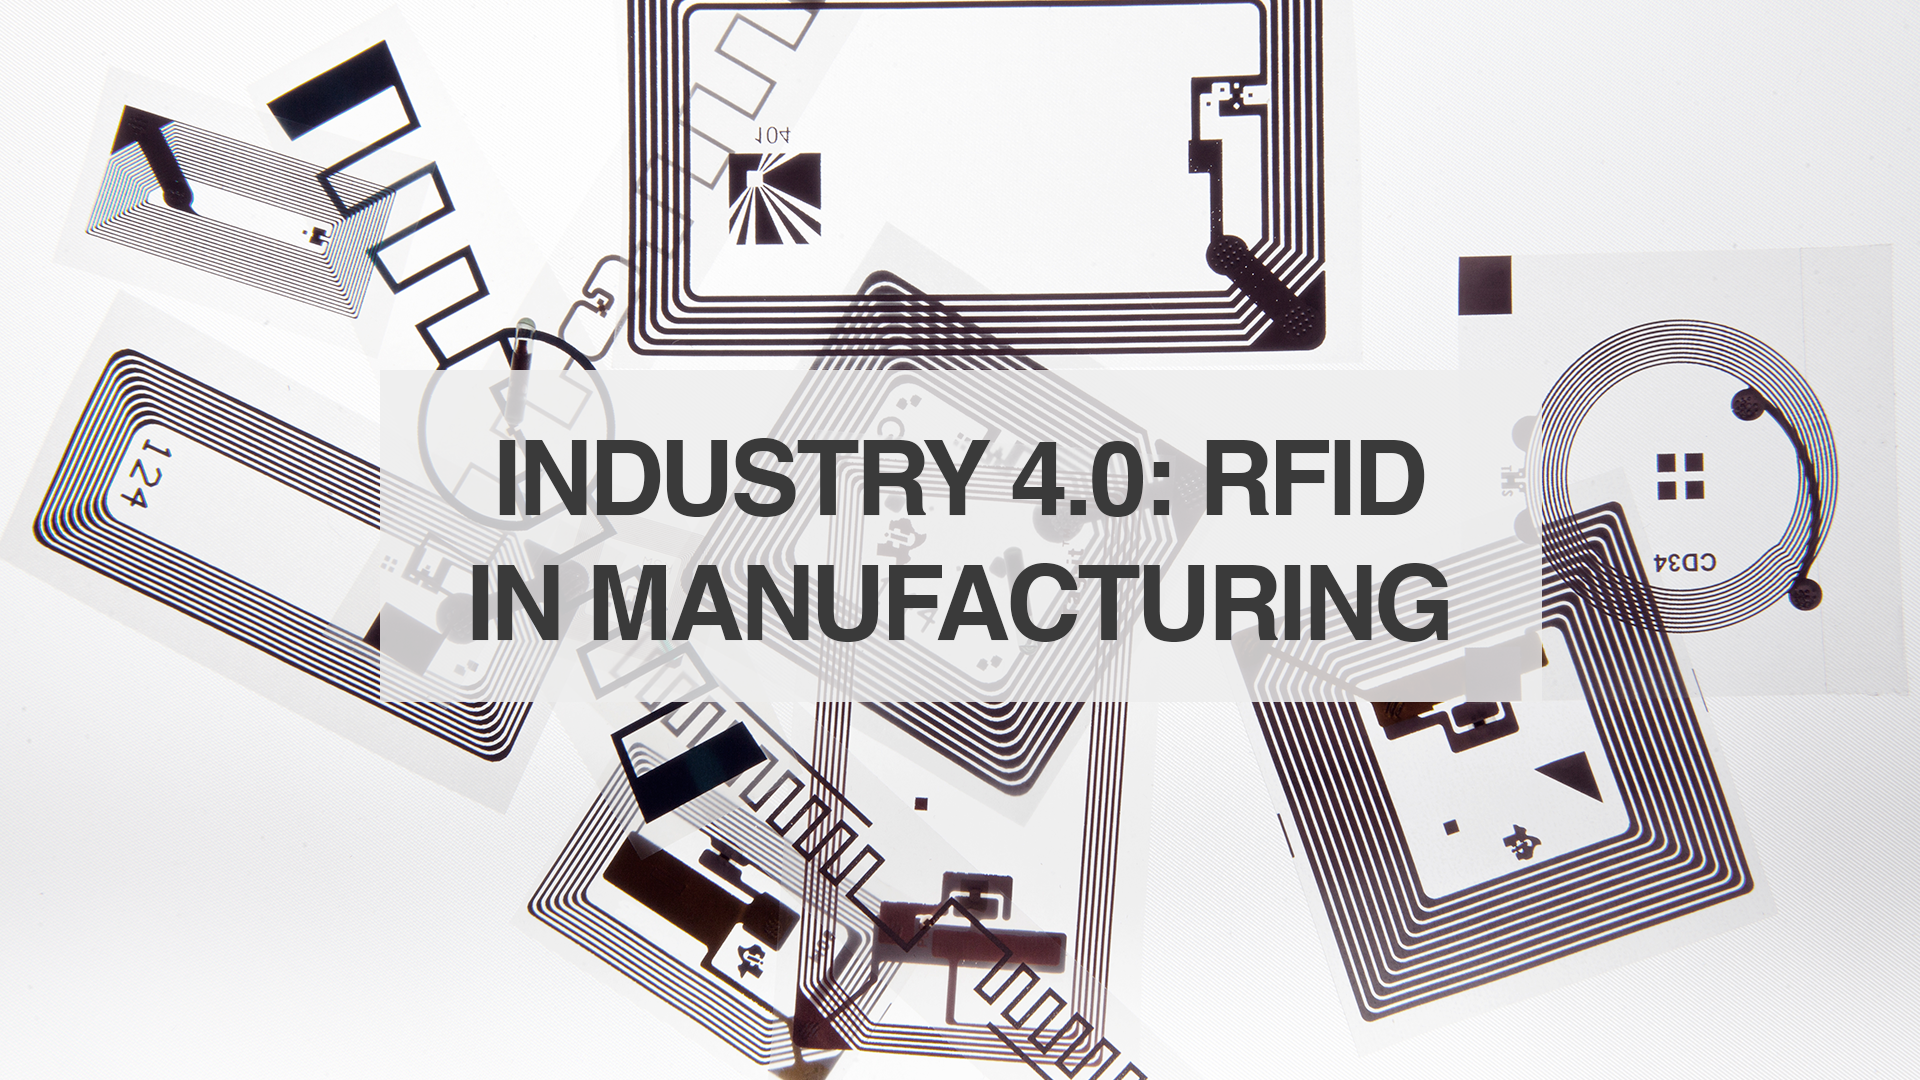 RFID In Manufacturing - Industry 4 0 Trends - Rowse